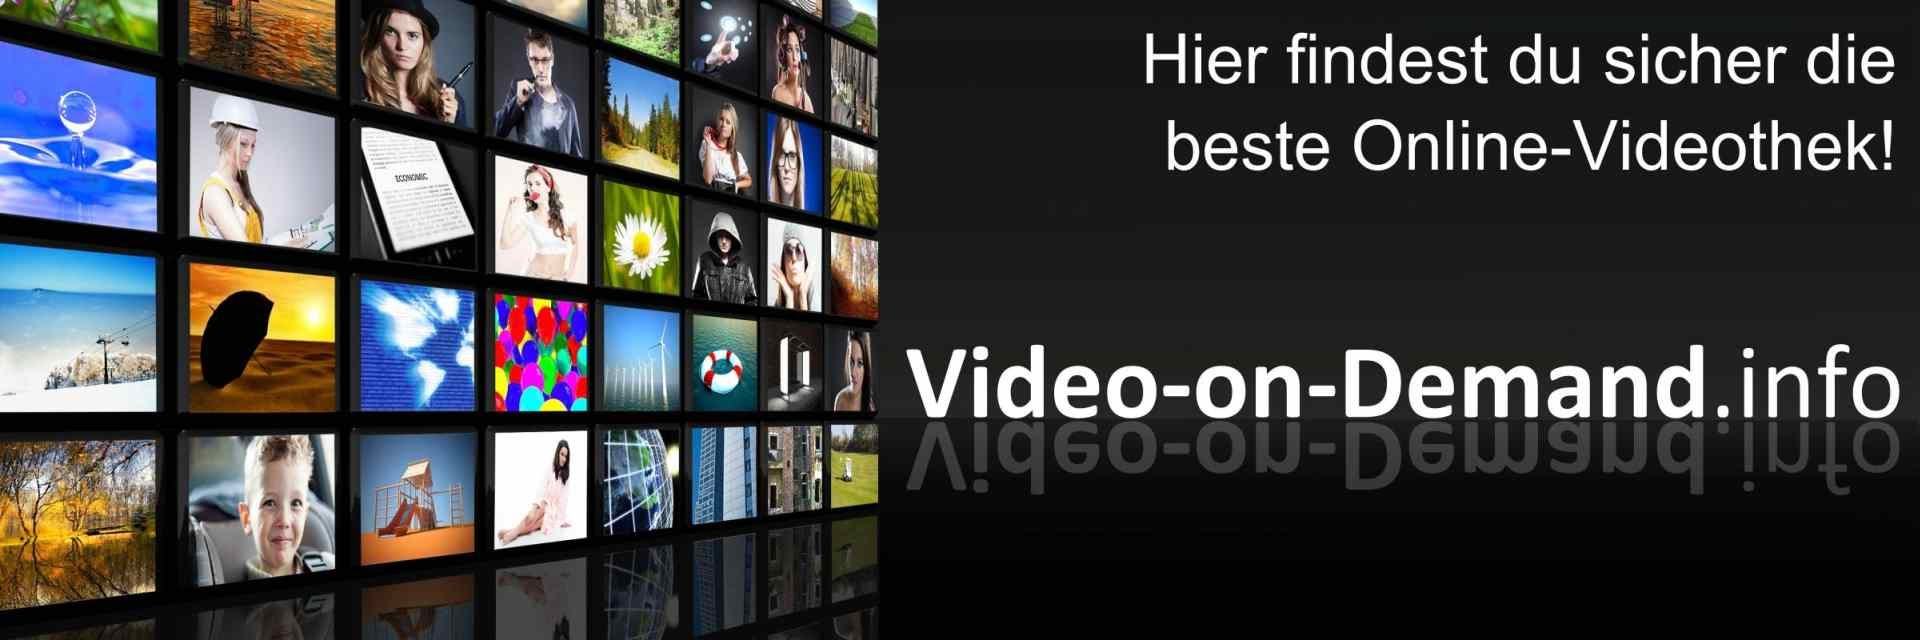 Die beste Onlinevideothek mit video-on-demand.info finden!